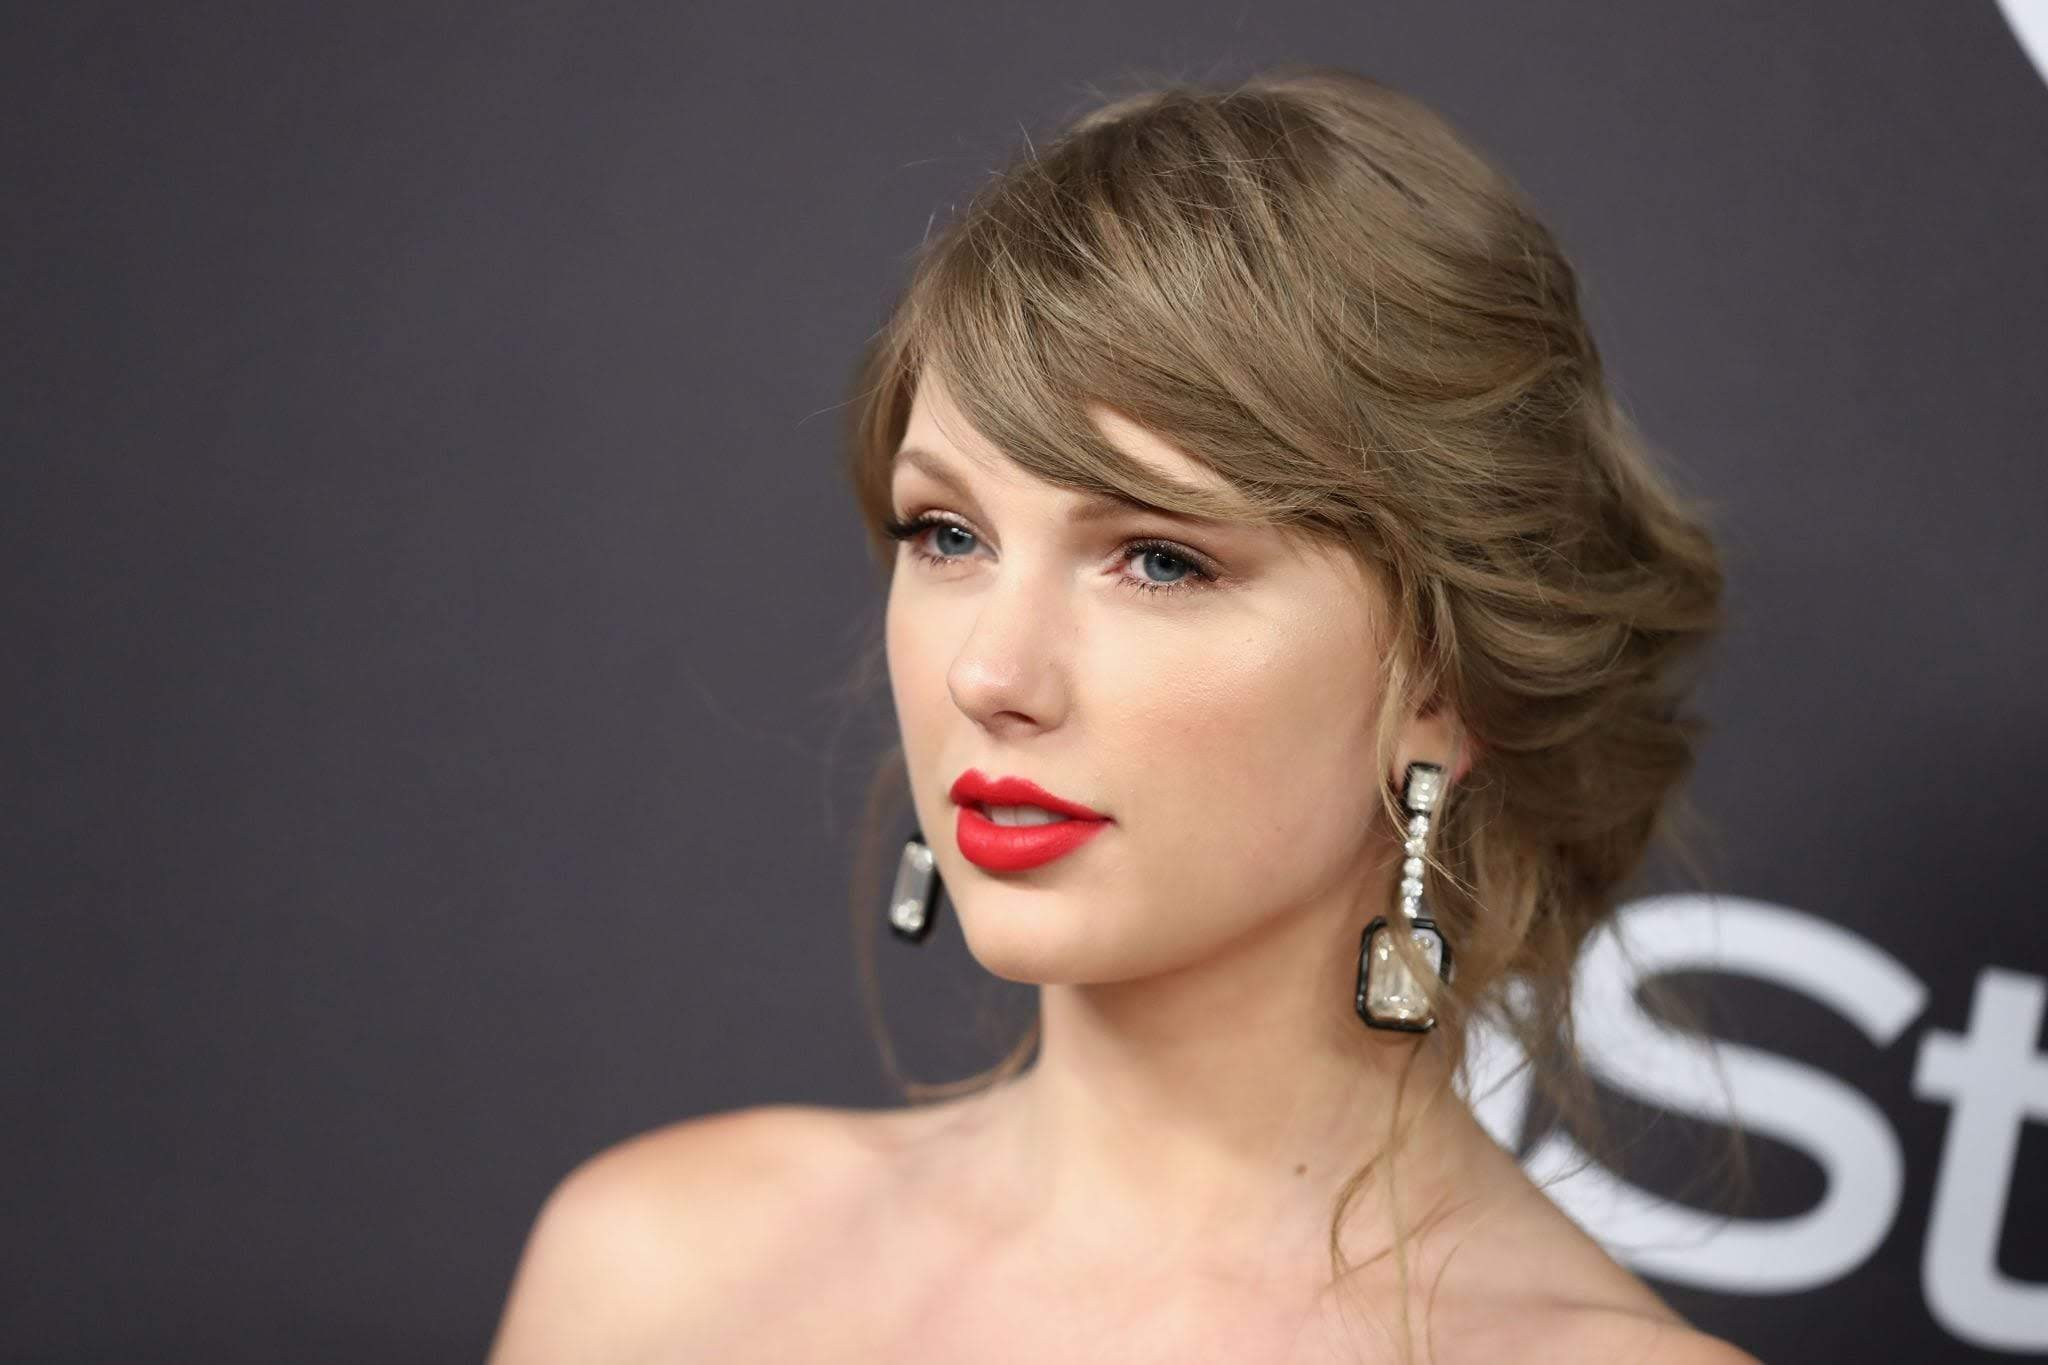 Taylor Swift Attend Golden Globes After Party : 第76回 ゴールデン・グローブ賞のアフター・パーティのテイラー・スウィフト ! !